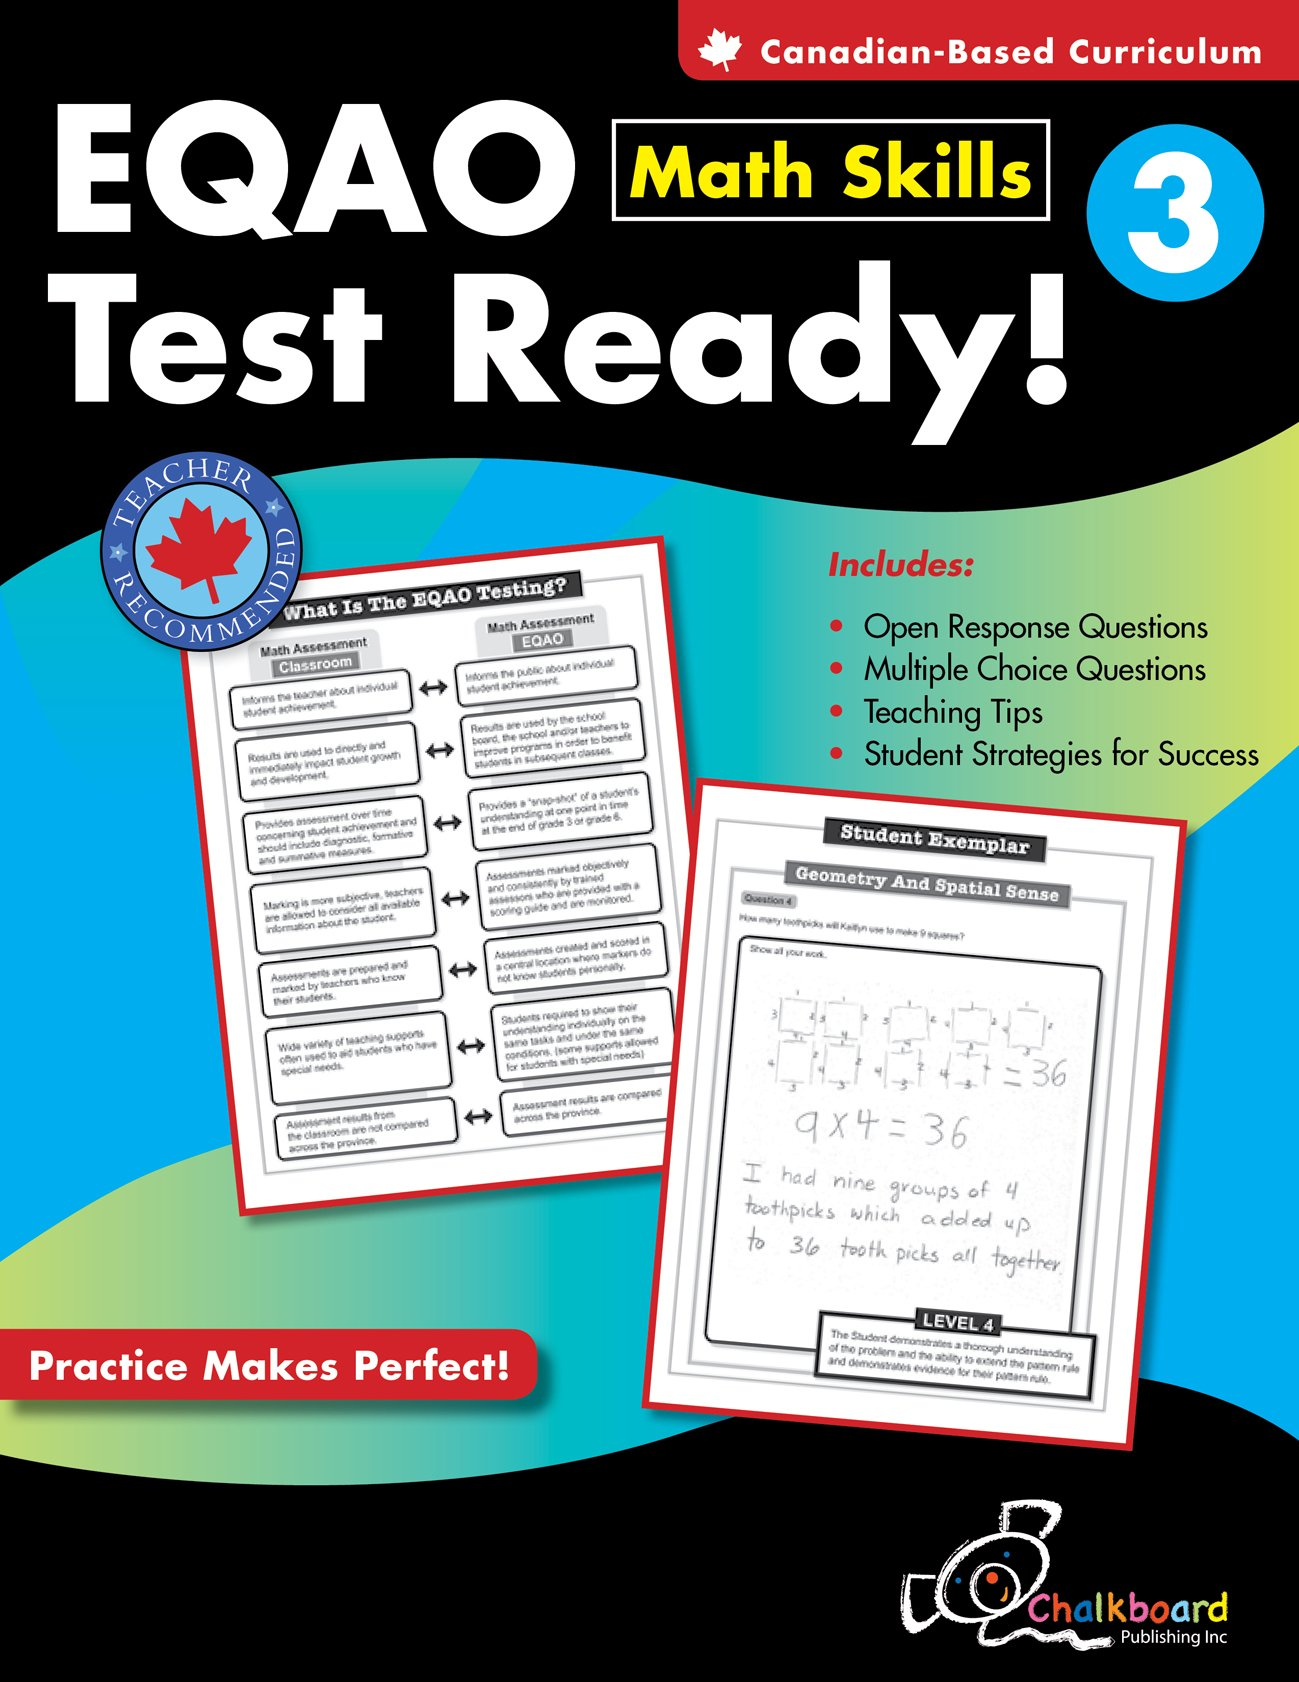 EQAO Test Ready Math Skills 3: Demetra Turnbull: 9781897514252 ...